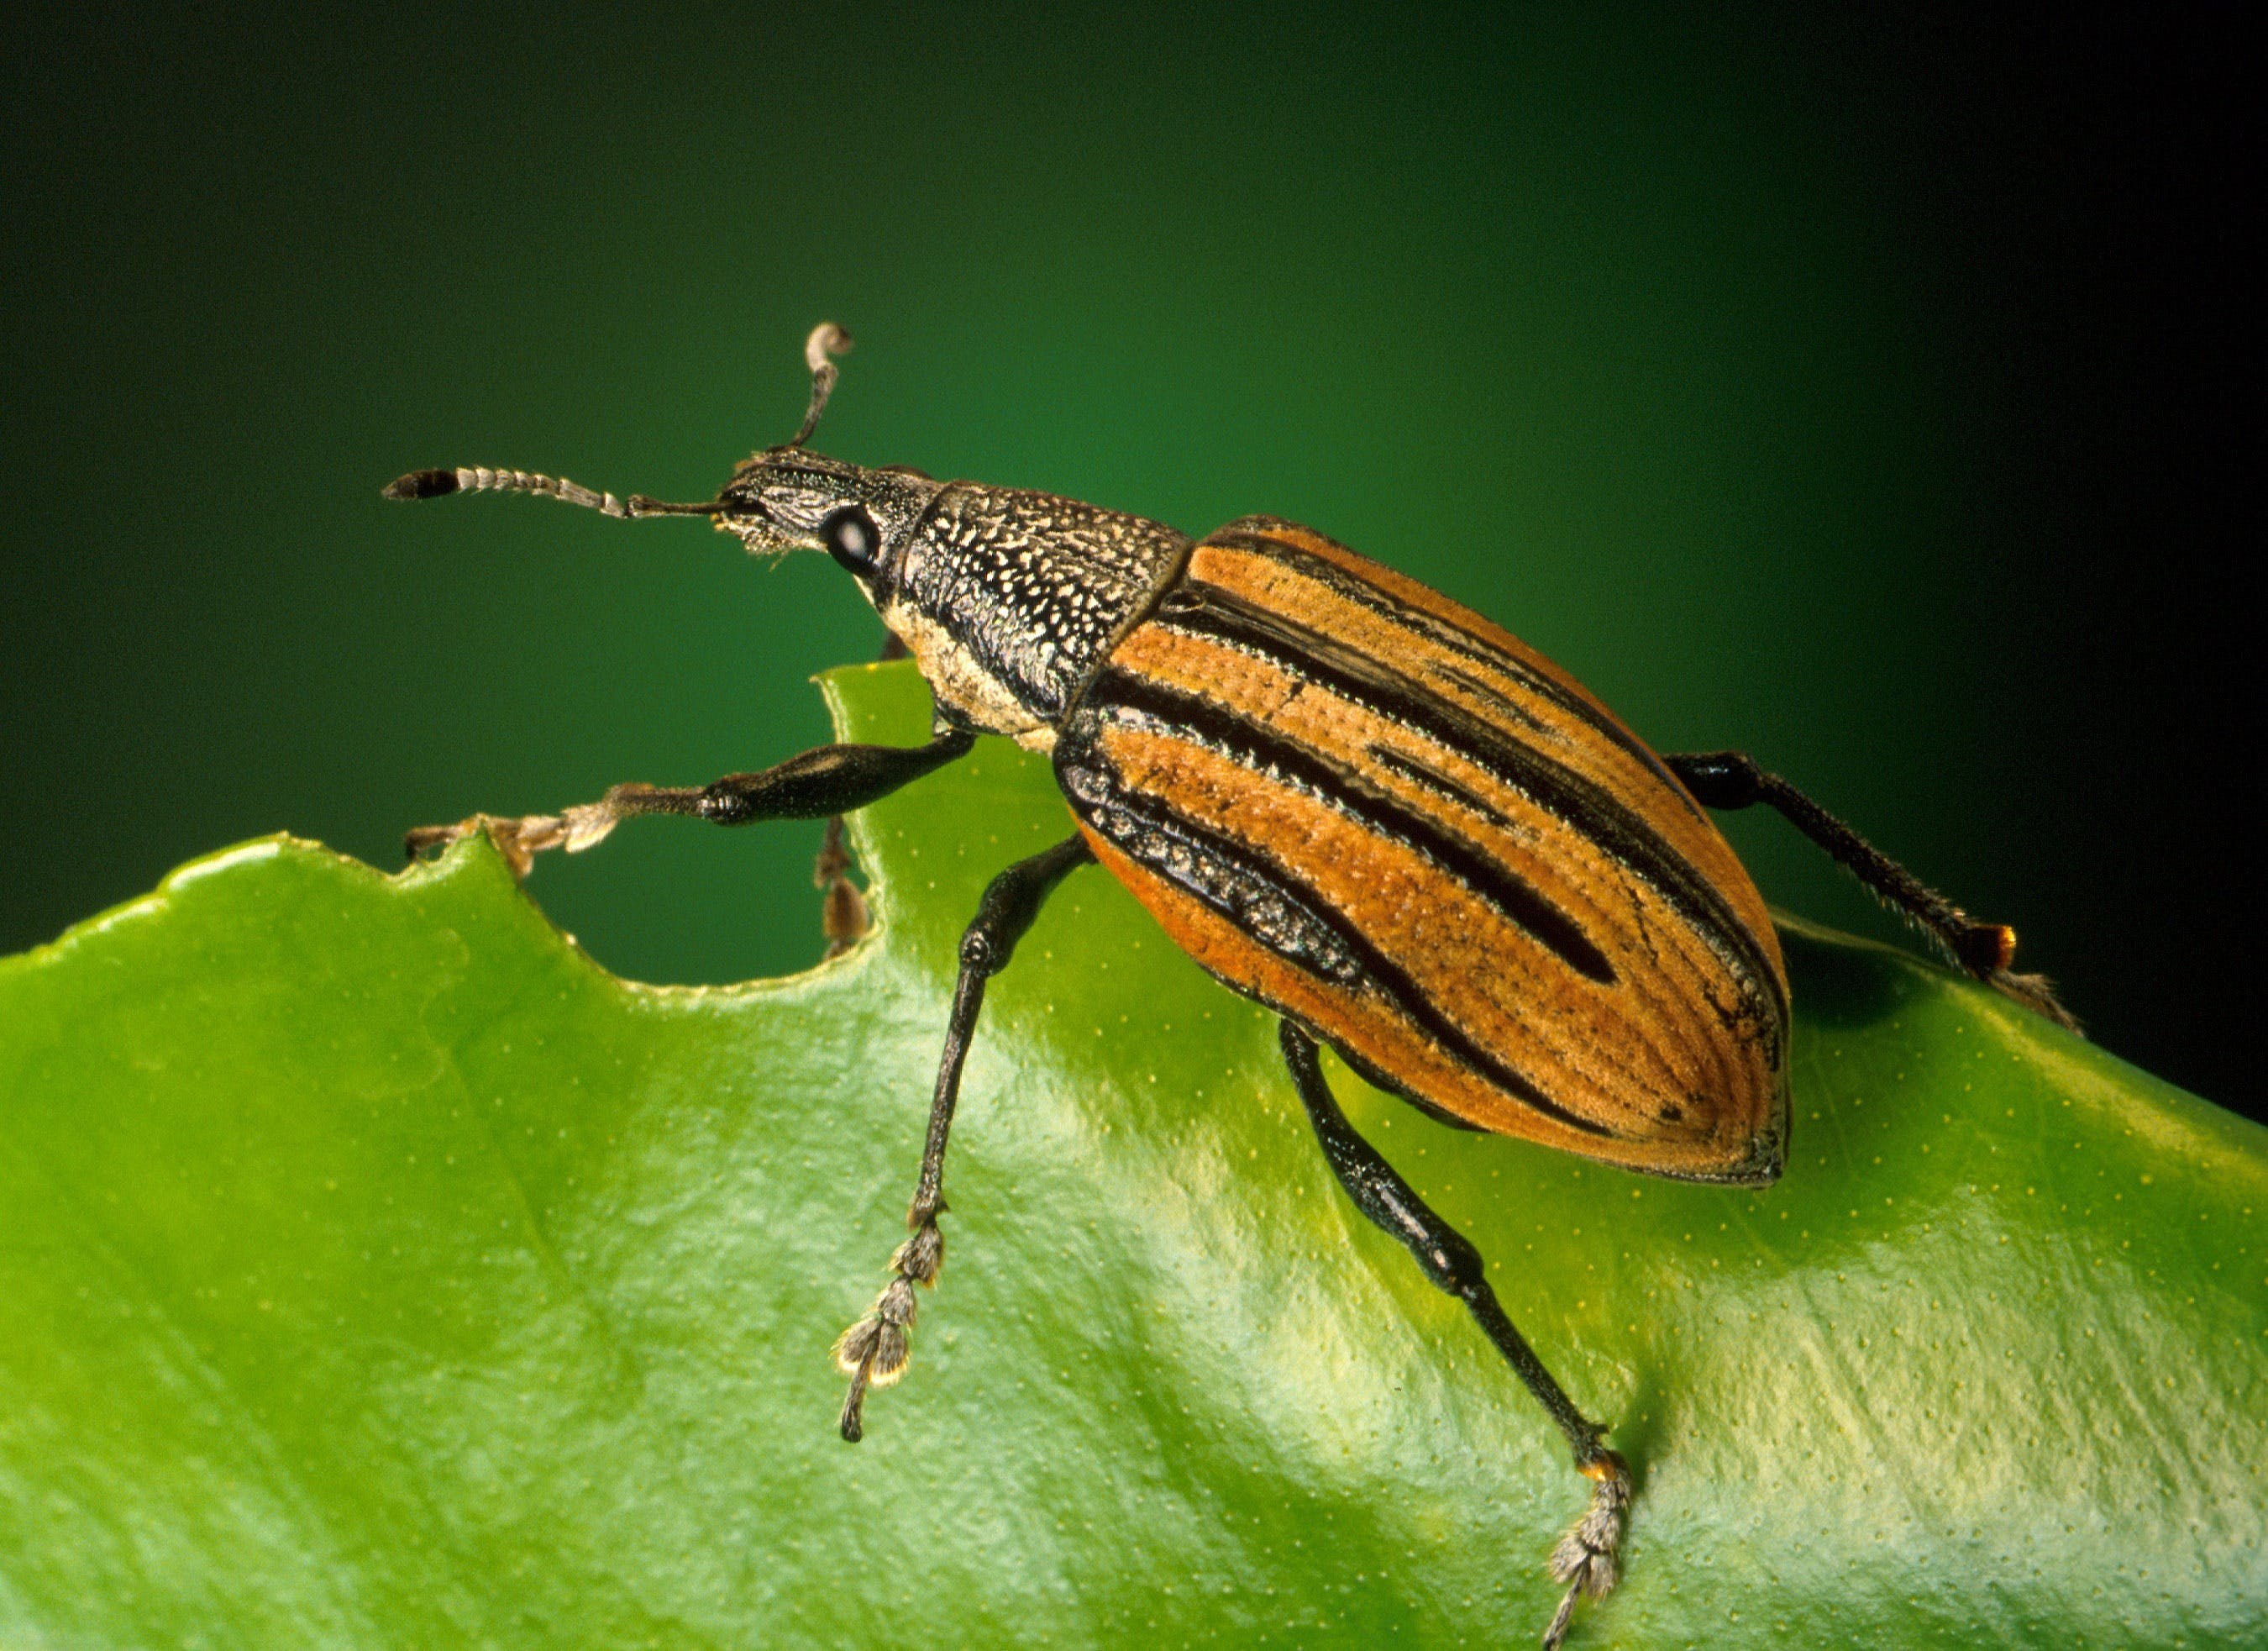 Black and Brown Insect on Green Leaf